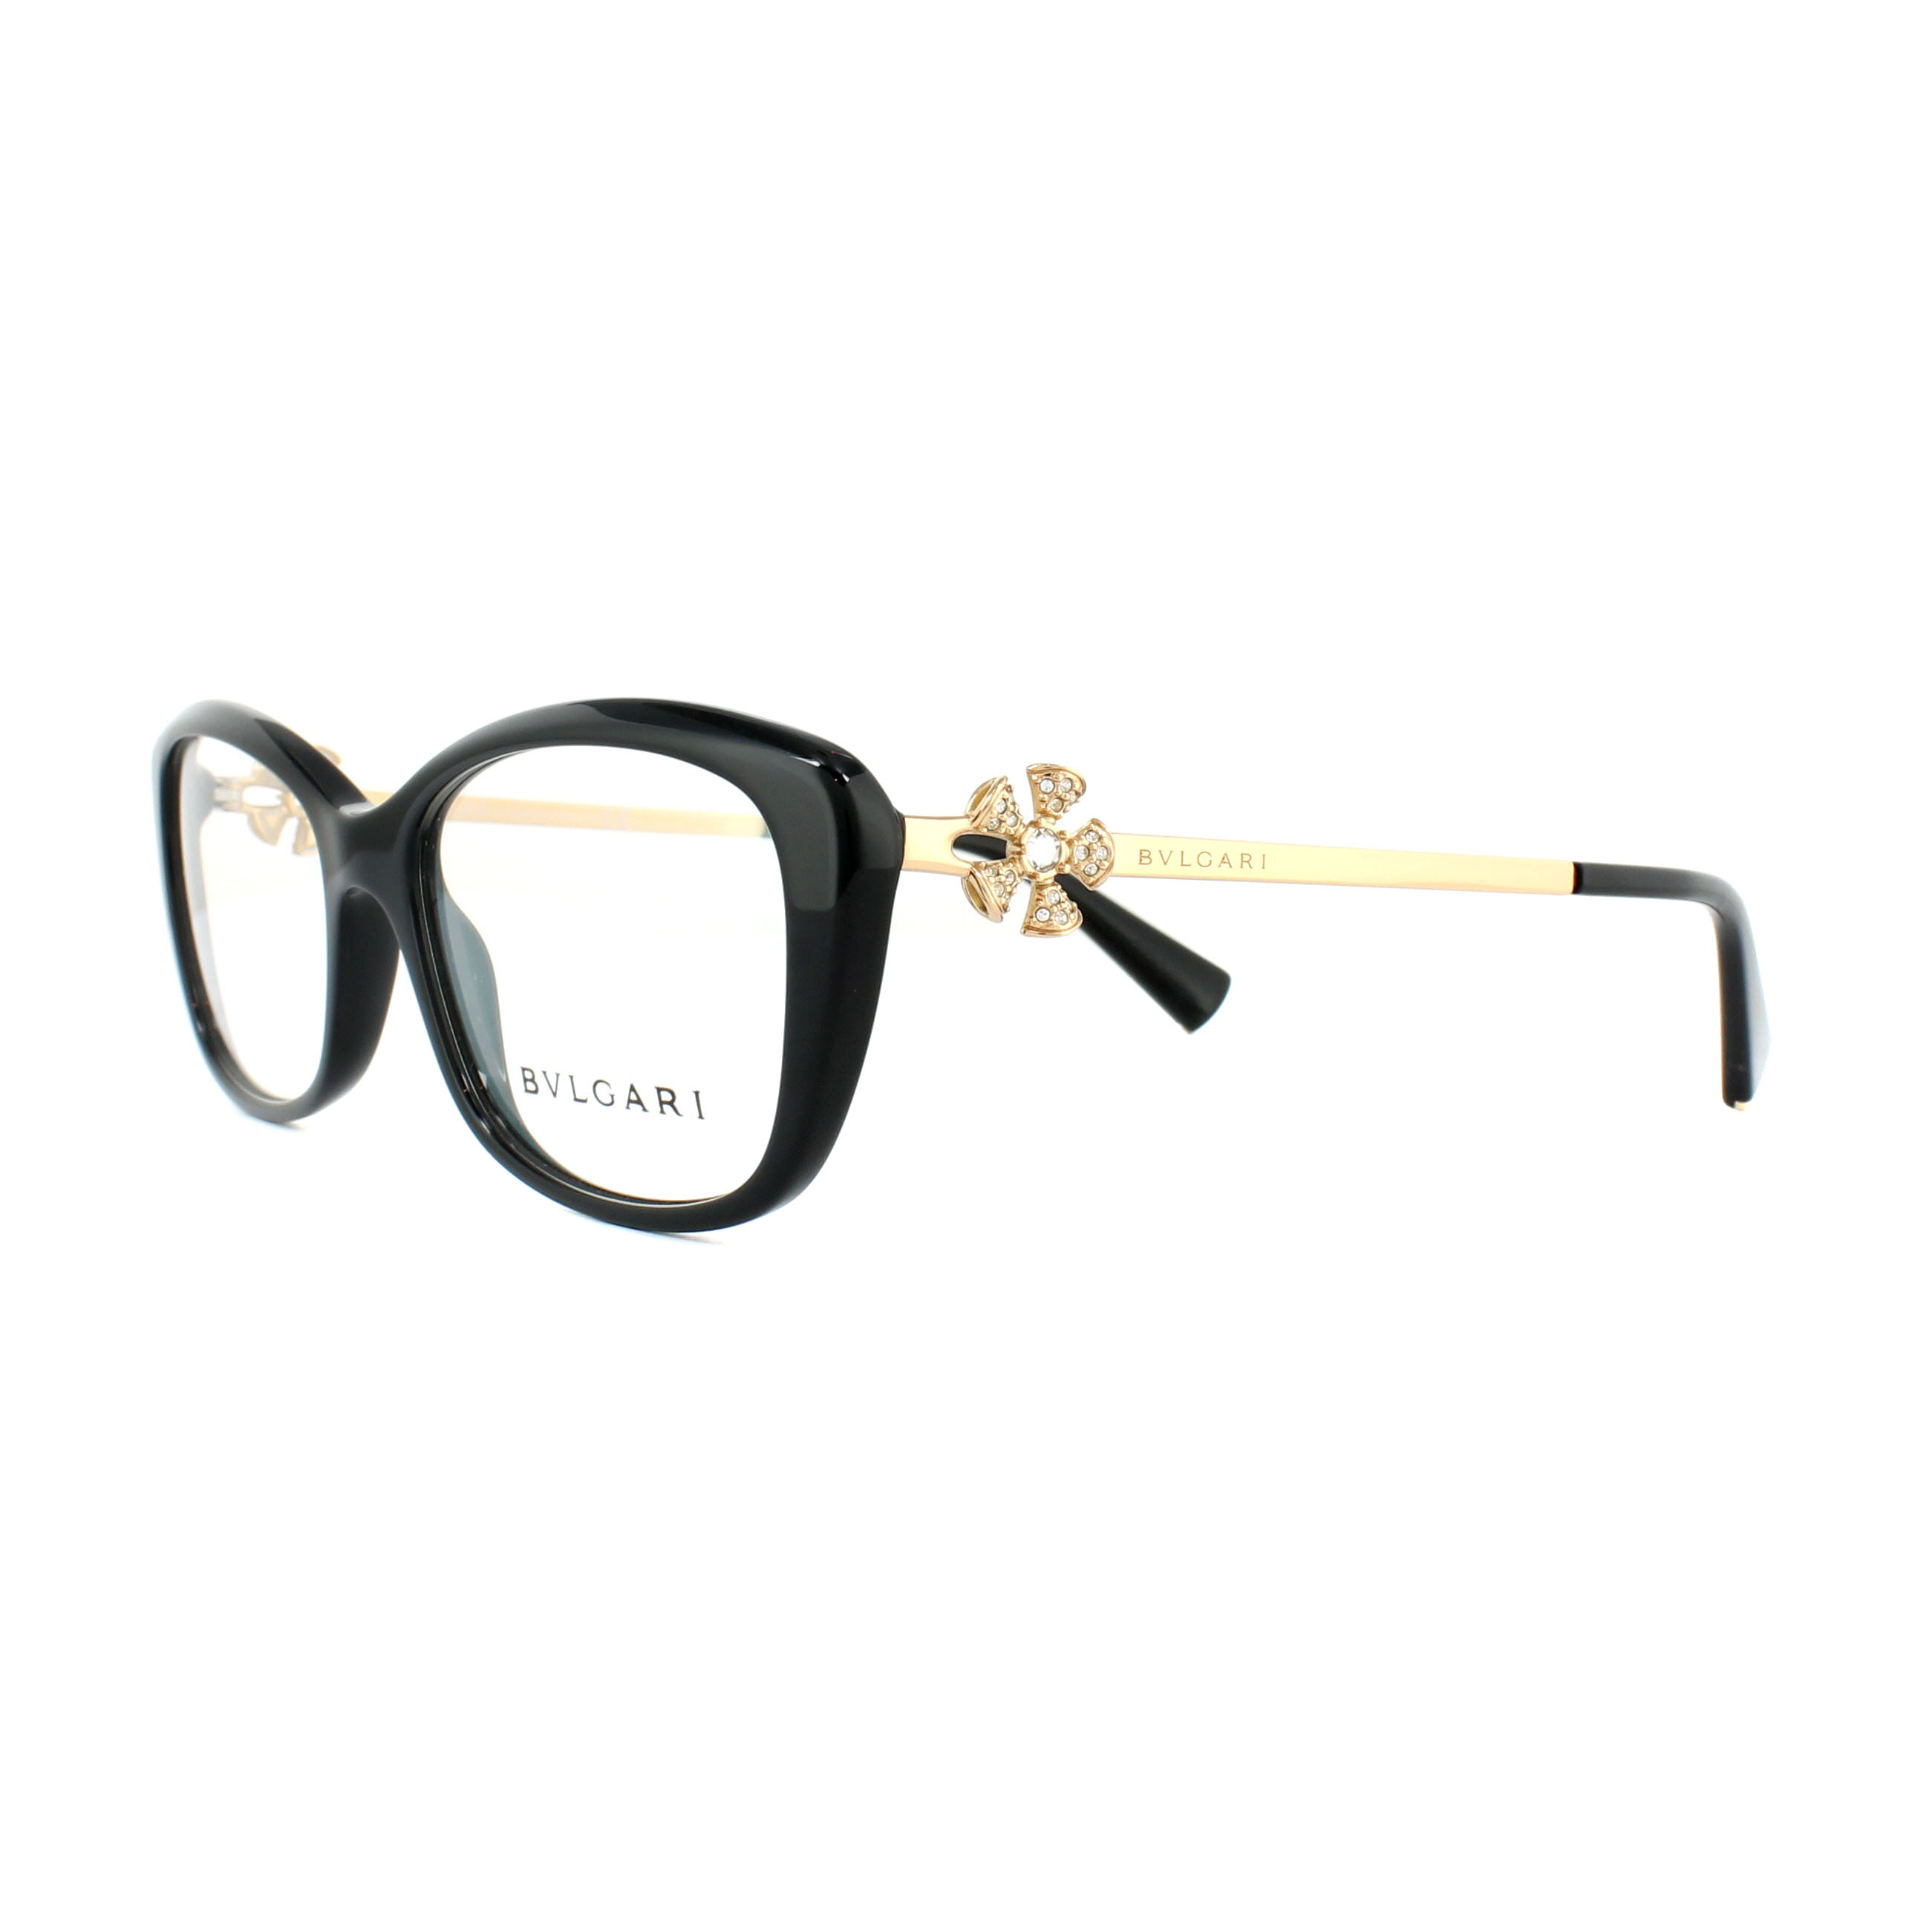 354acc851cf34 Sentinel Bvlgari Glasses Frames 4145B 501 Black Gold 53mm Womens